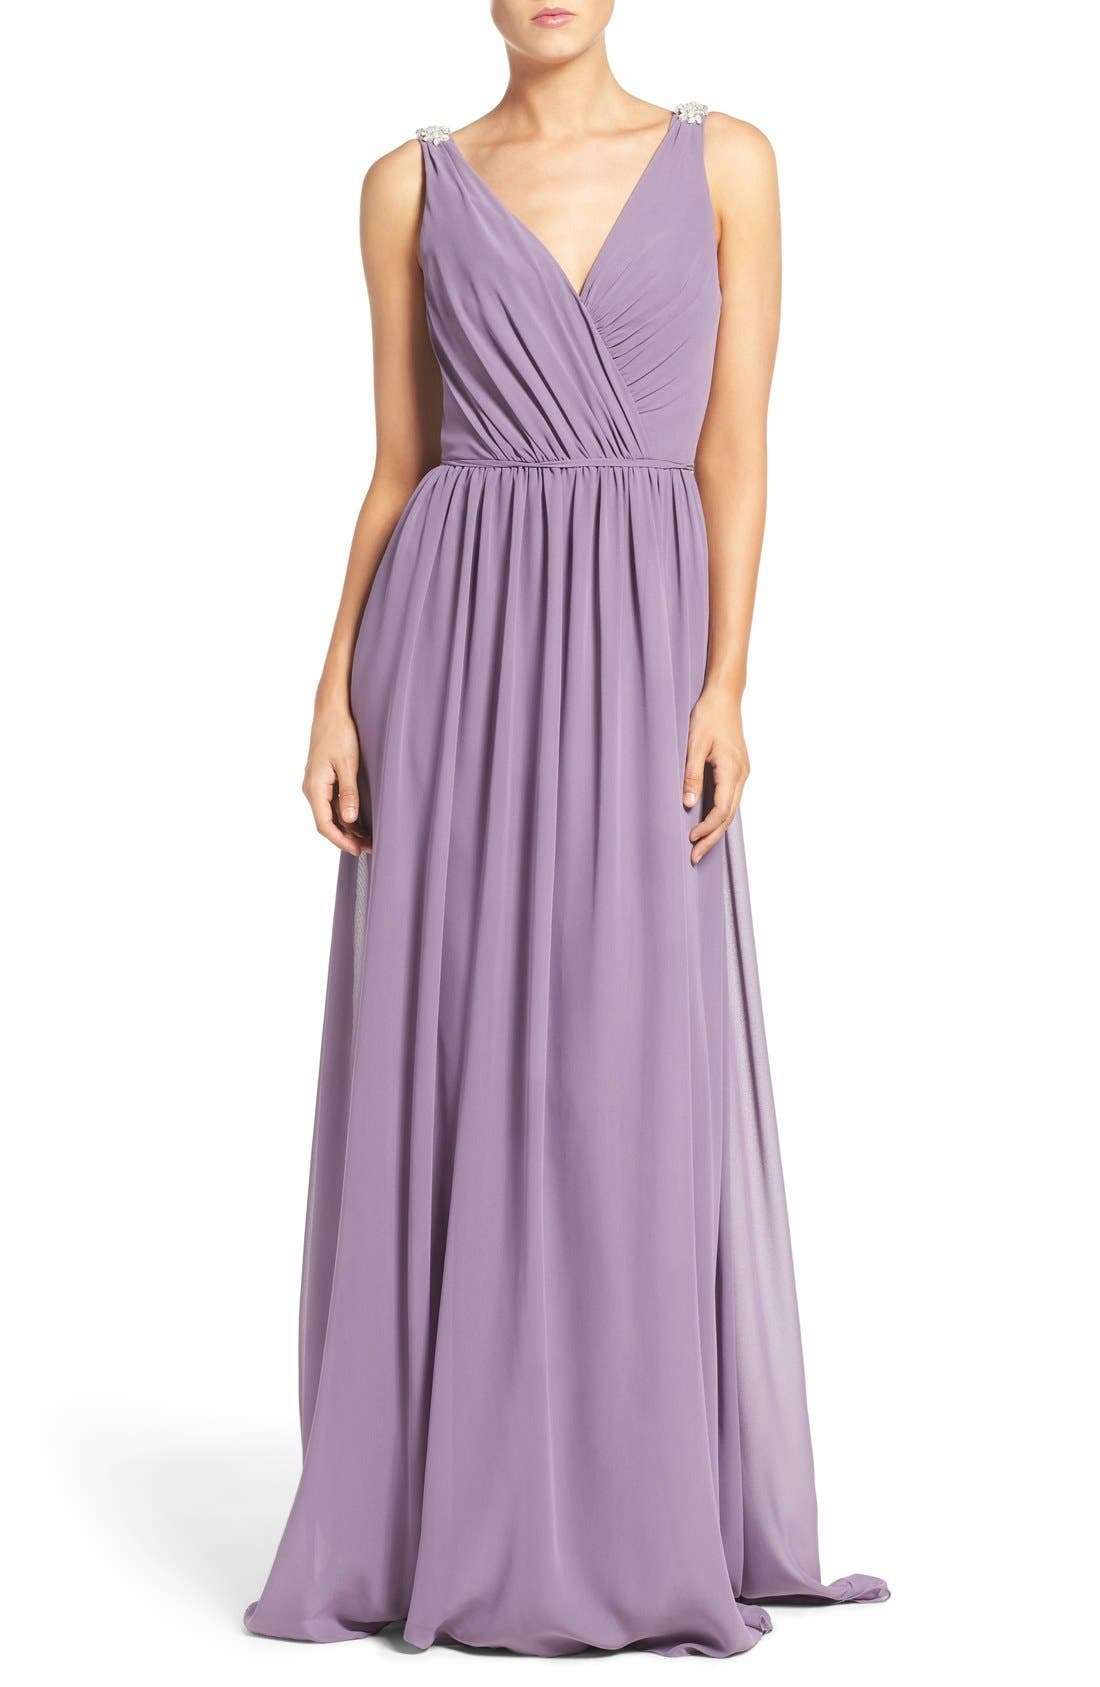 Main Image - Hayley Paige Occasions Embellished Shoulder V-Neck Chiffon Gown